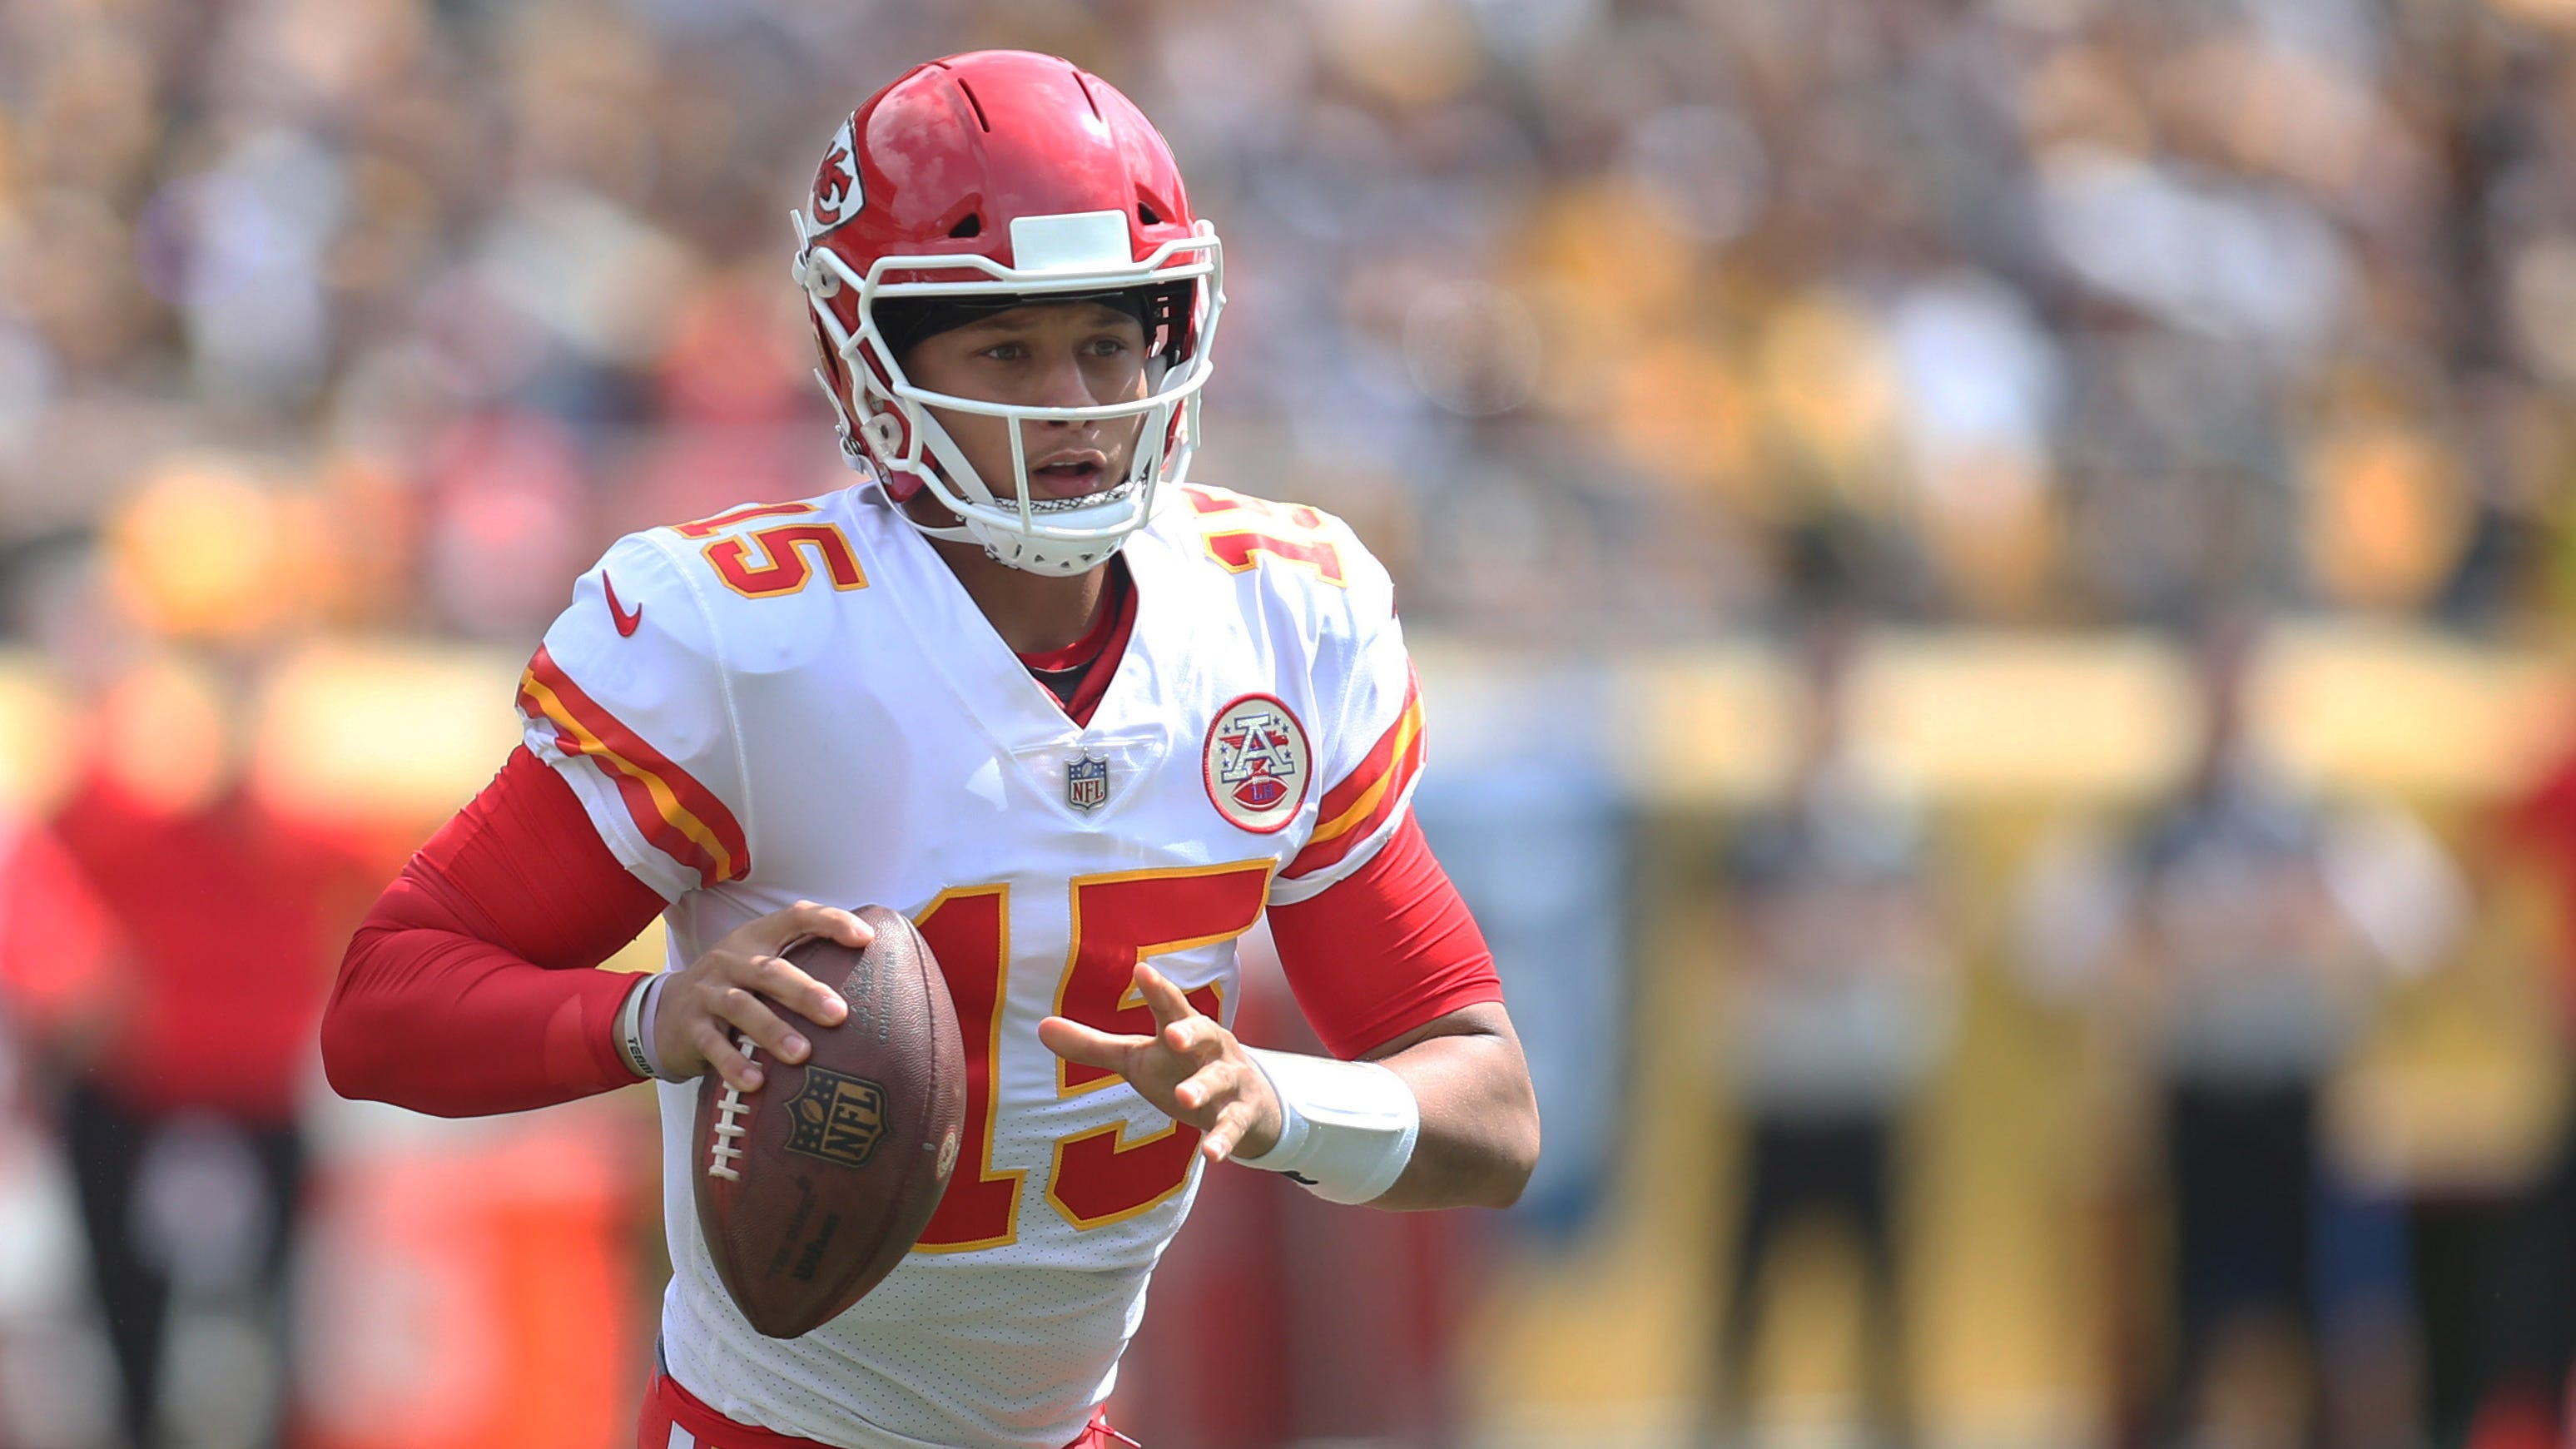 Nfl Week 3 Questions Will Patrick Mahomes Stay Red Hot